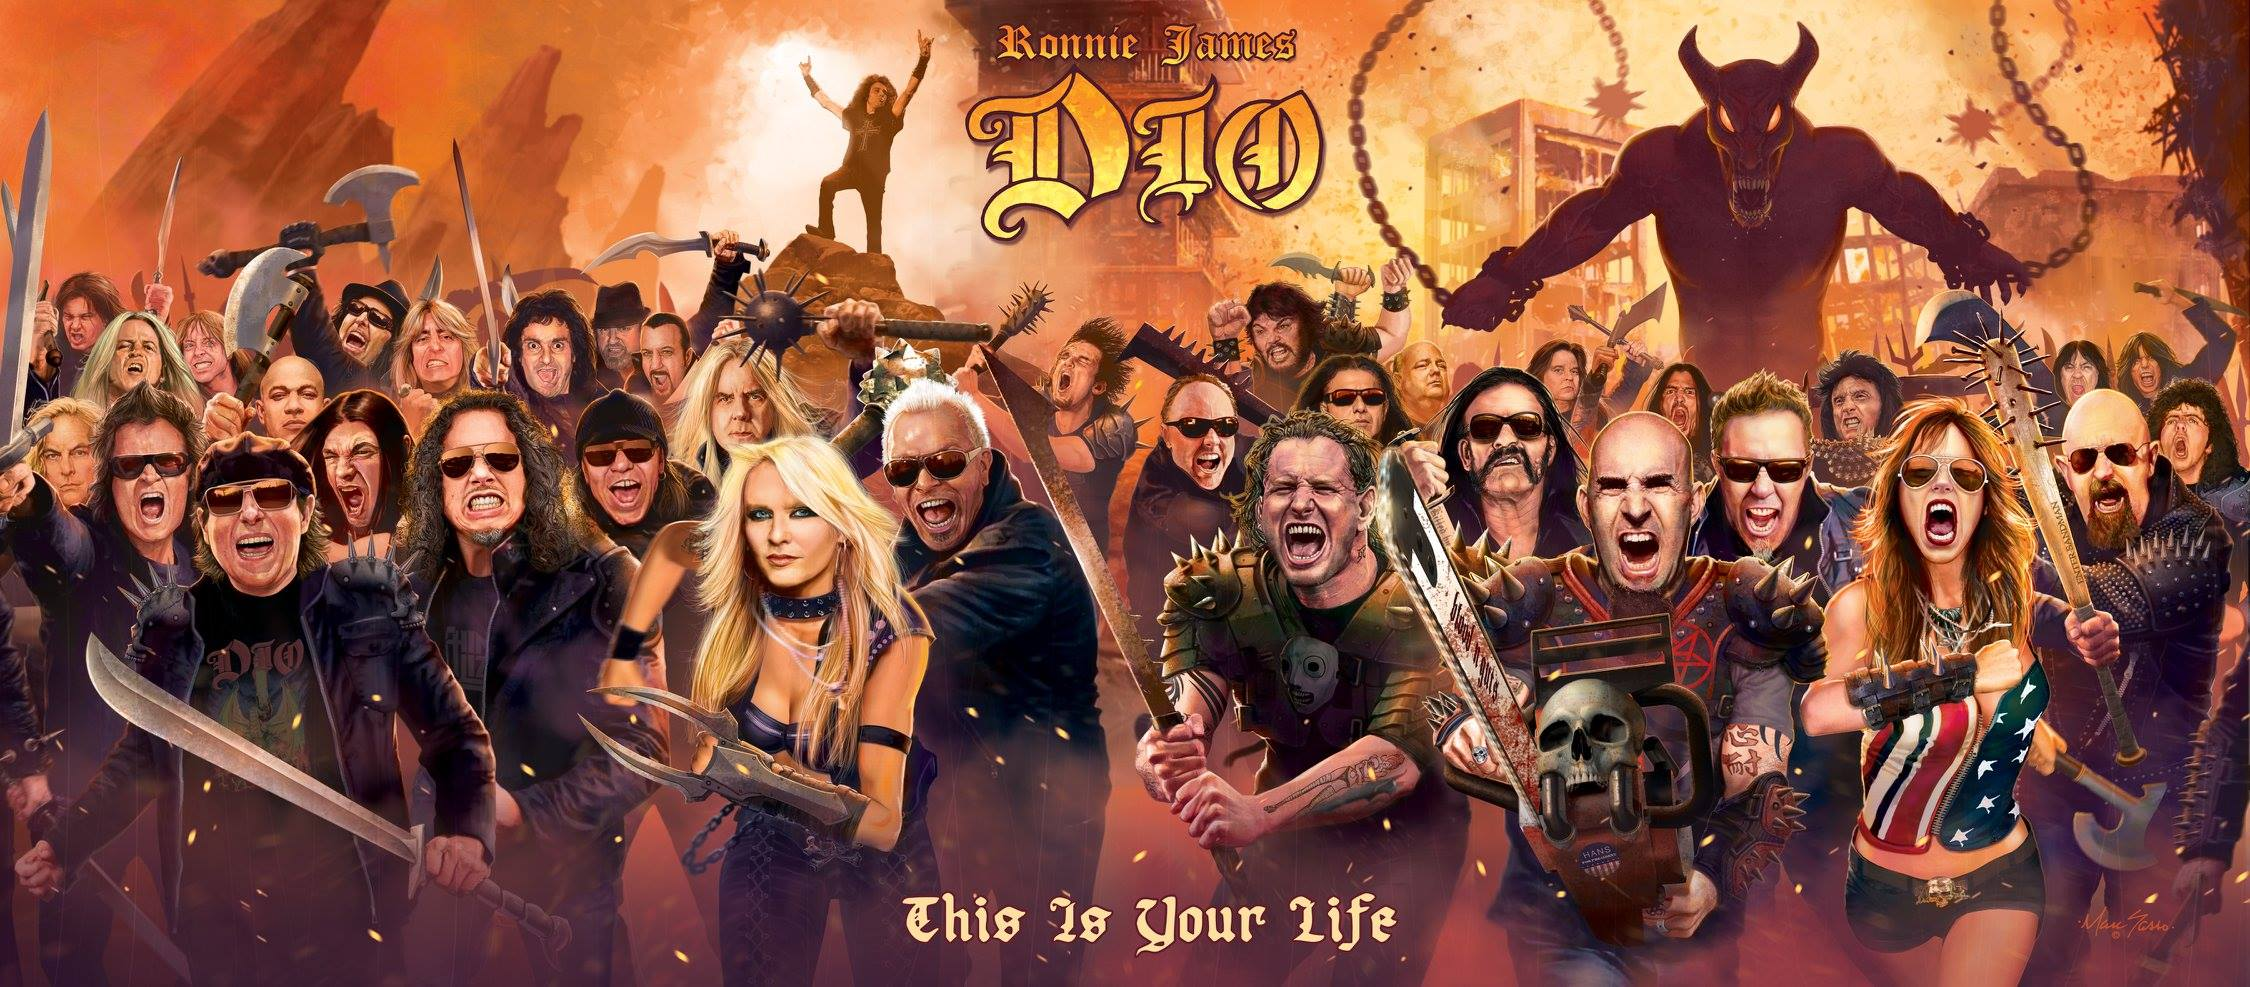 ronnie-james-dio-this-is-your-life